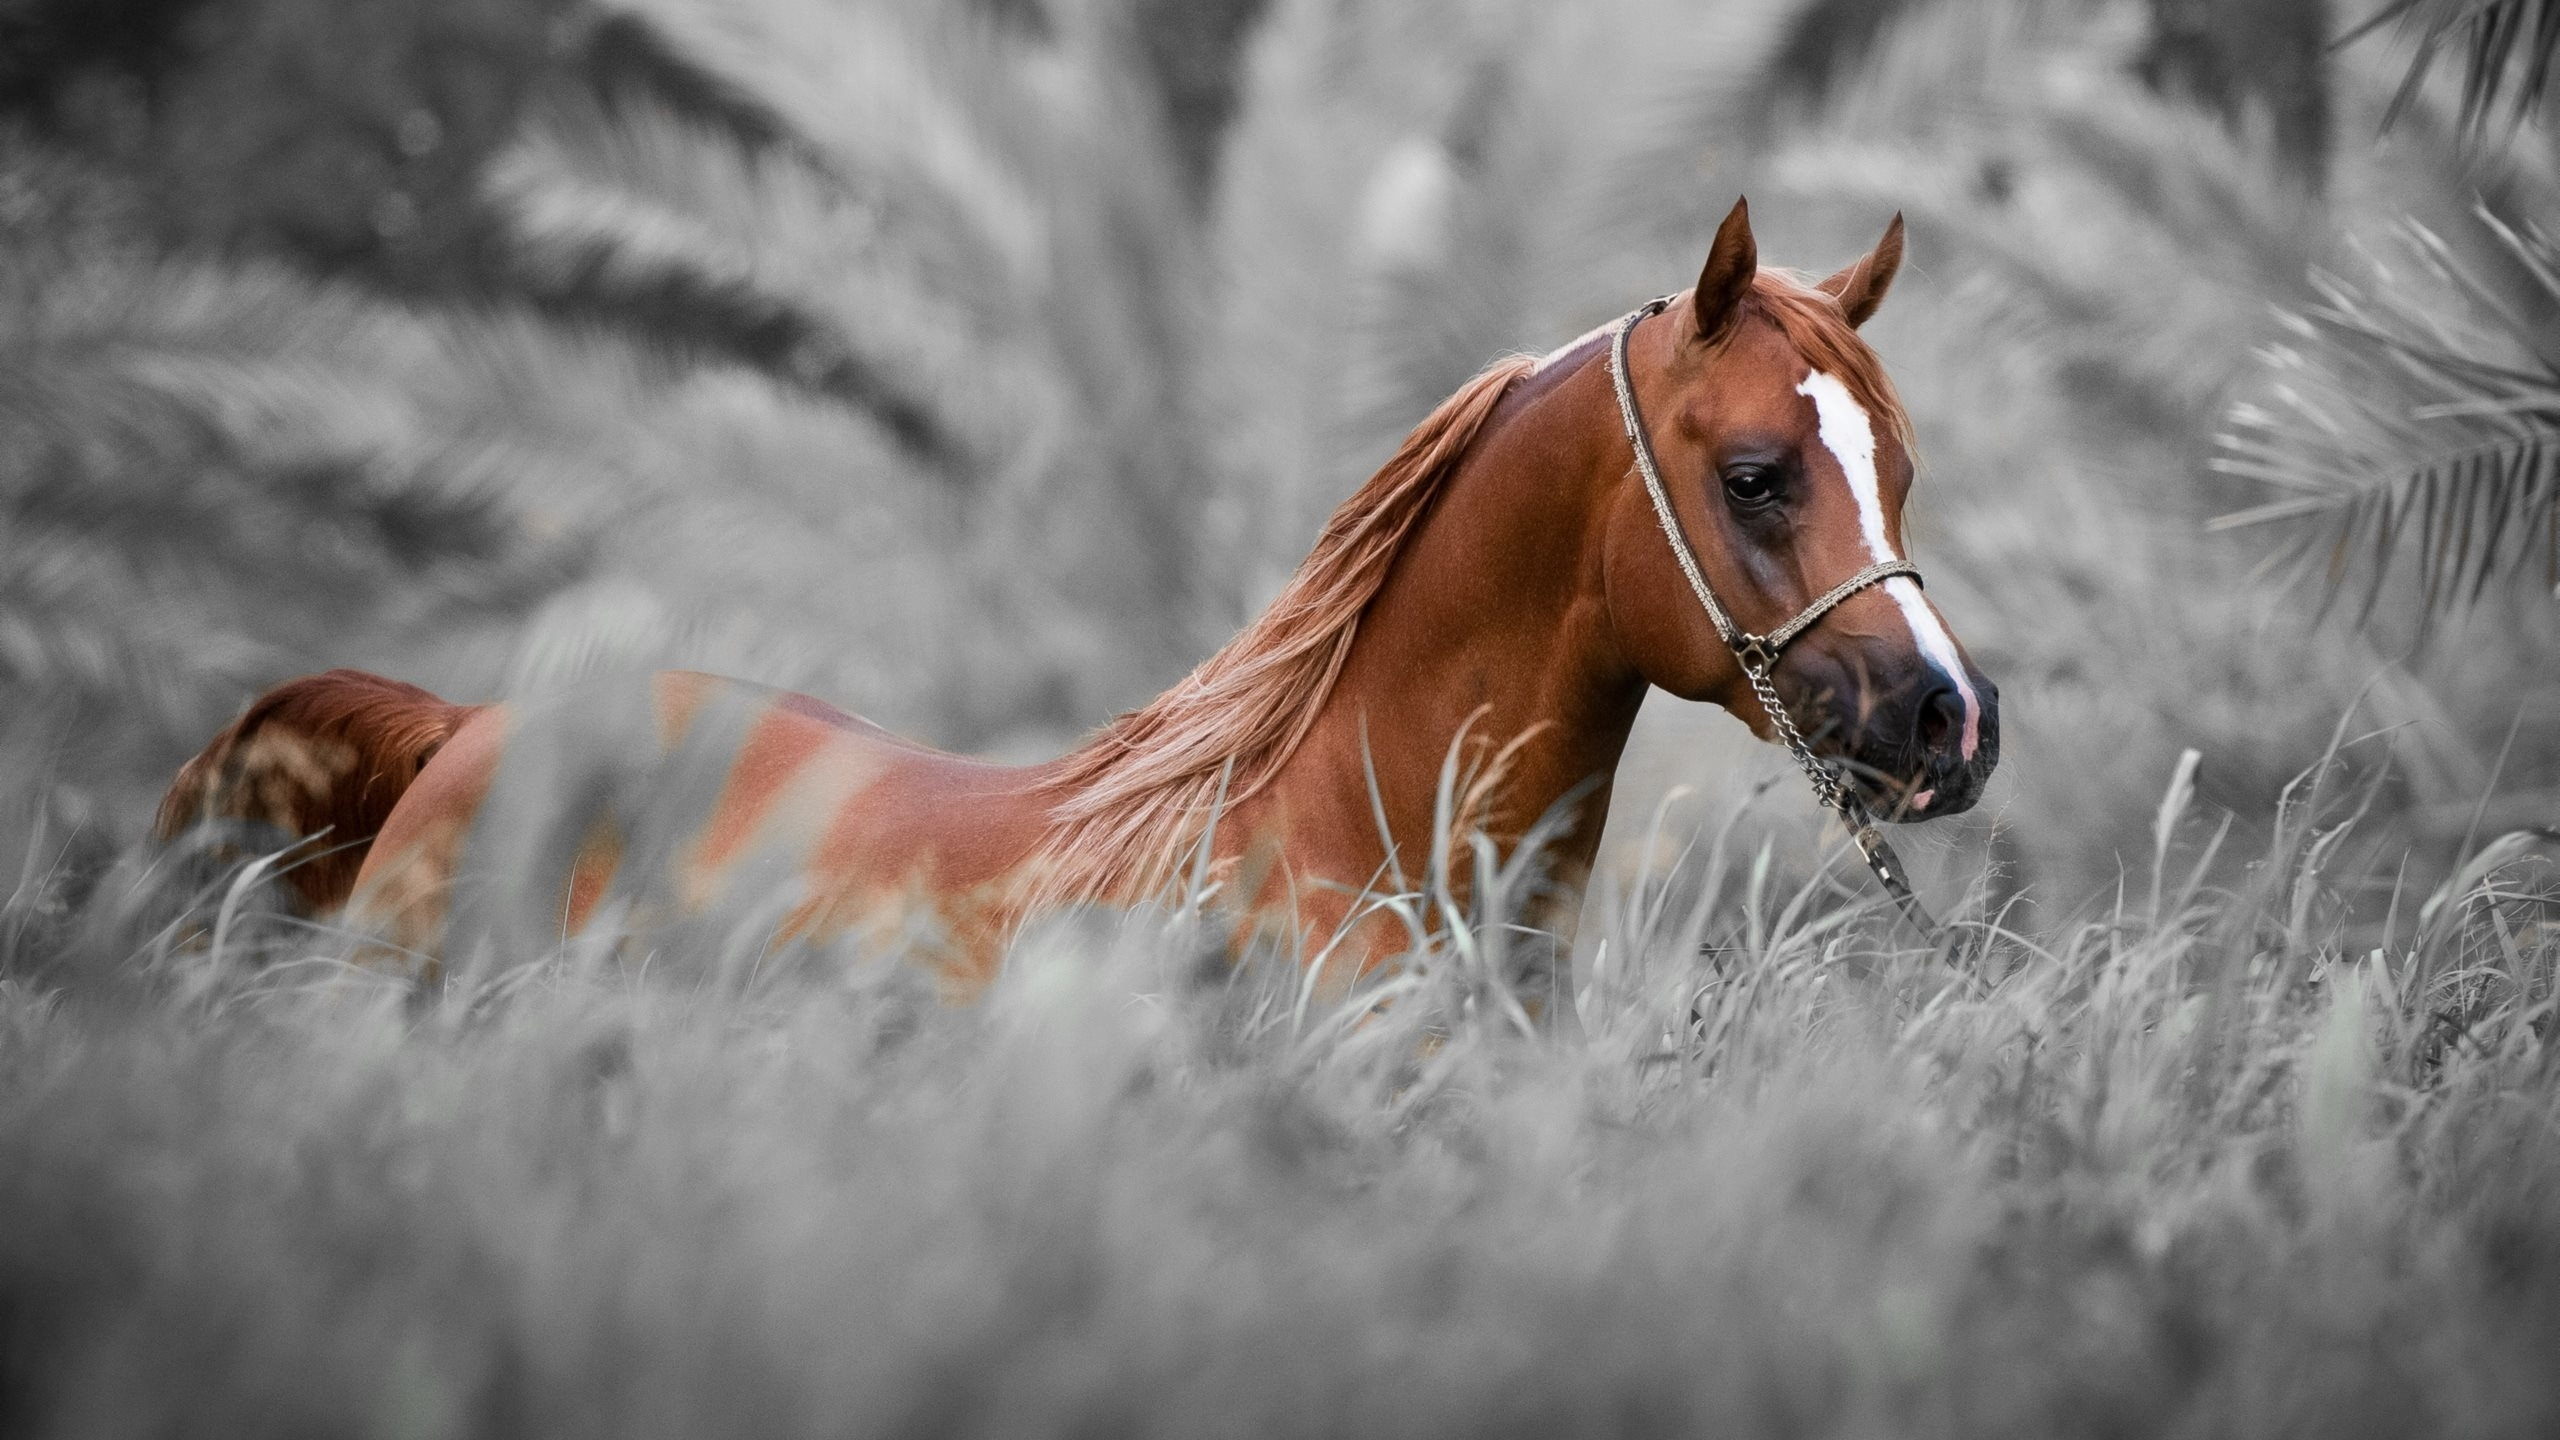 images of horse wallpapers 40 wallpapers